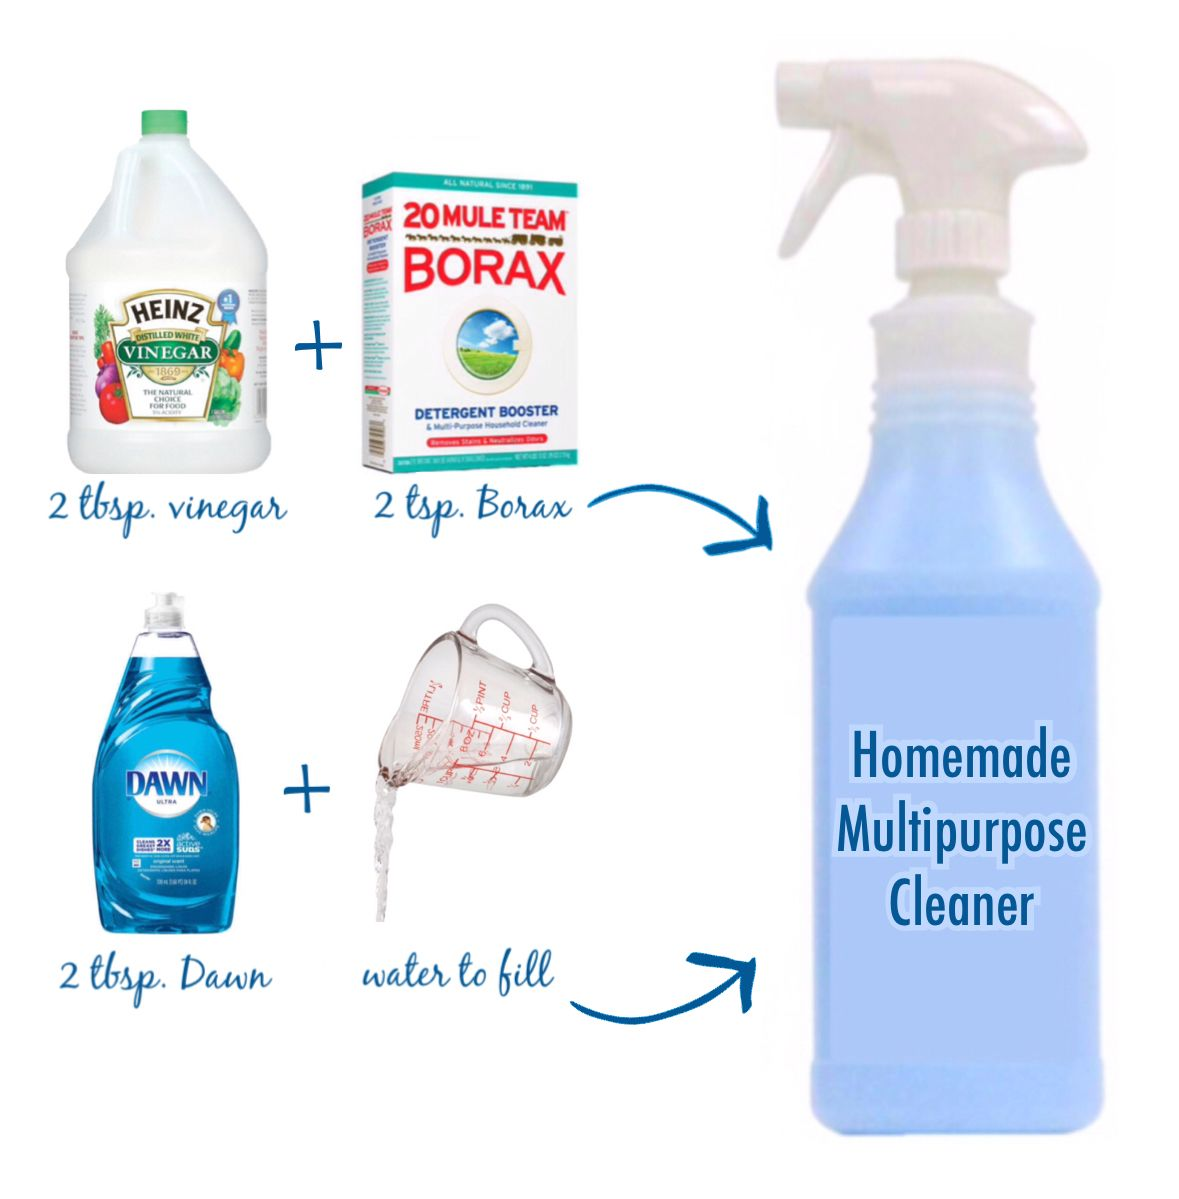 ('Homemade Multipurpose Cleaner...!') (With Images